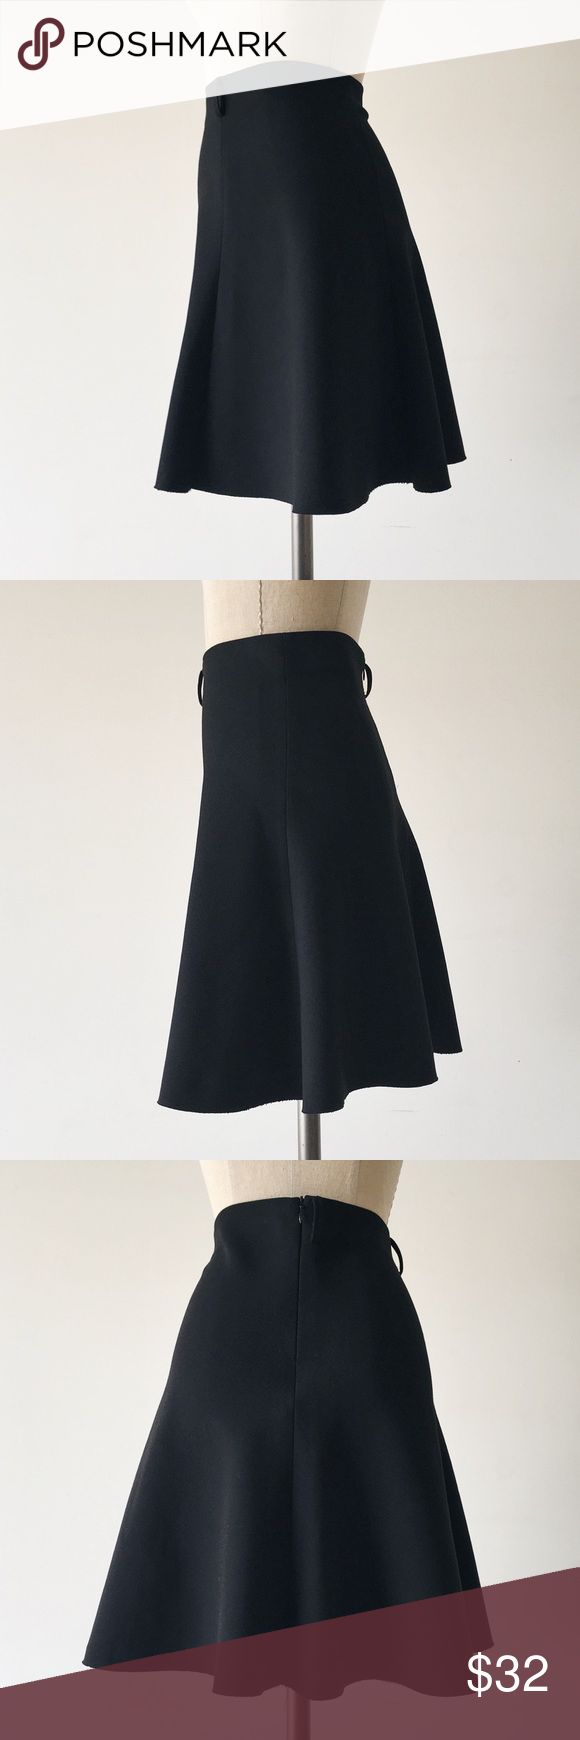 """ZARA   Black Neoprene Trumpet Skirt FEATURES:  •Rear invisible zipper  •Belt loops (no belt included)  •Slight stretch  •Synthetic fabric  MEASUREMENTS: Waist - 26"""" Hips - 34"""" Length - 20""""  ☑️Very good condition ✖️NO TRADES/RESERVES/MODELING 10-058-16 Zara Skirts"""